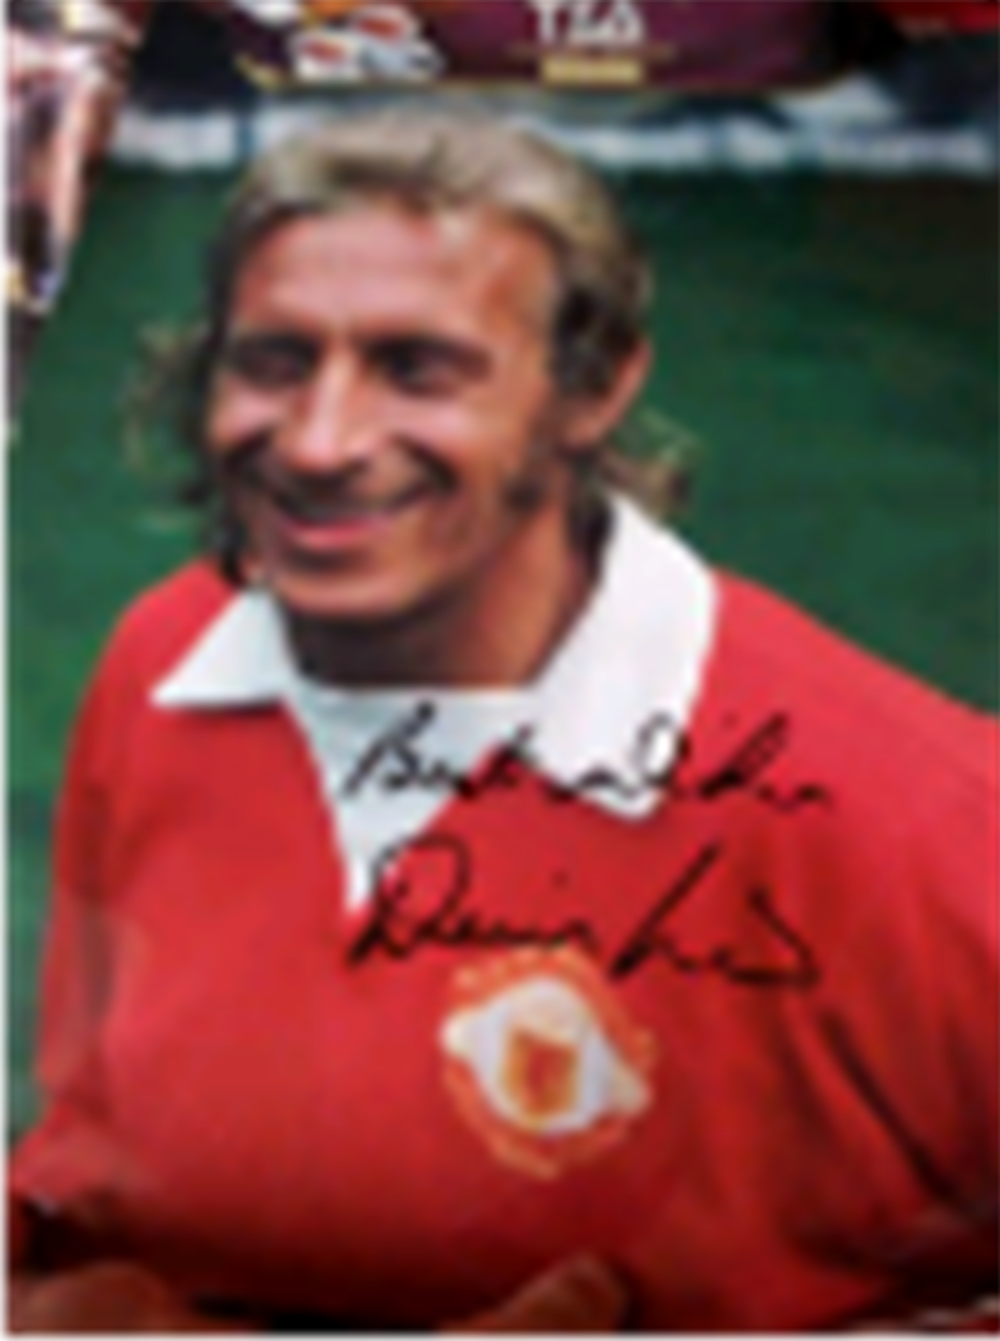 Lot 131: Signed Denis Law colour picture (No 1) - Denis Law signed for Manchester United in 1962, setting another British record transfer fee of £115,000. He spent 11 years at Manchester United, where he scored 237 goals in 404 appearances. His